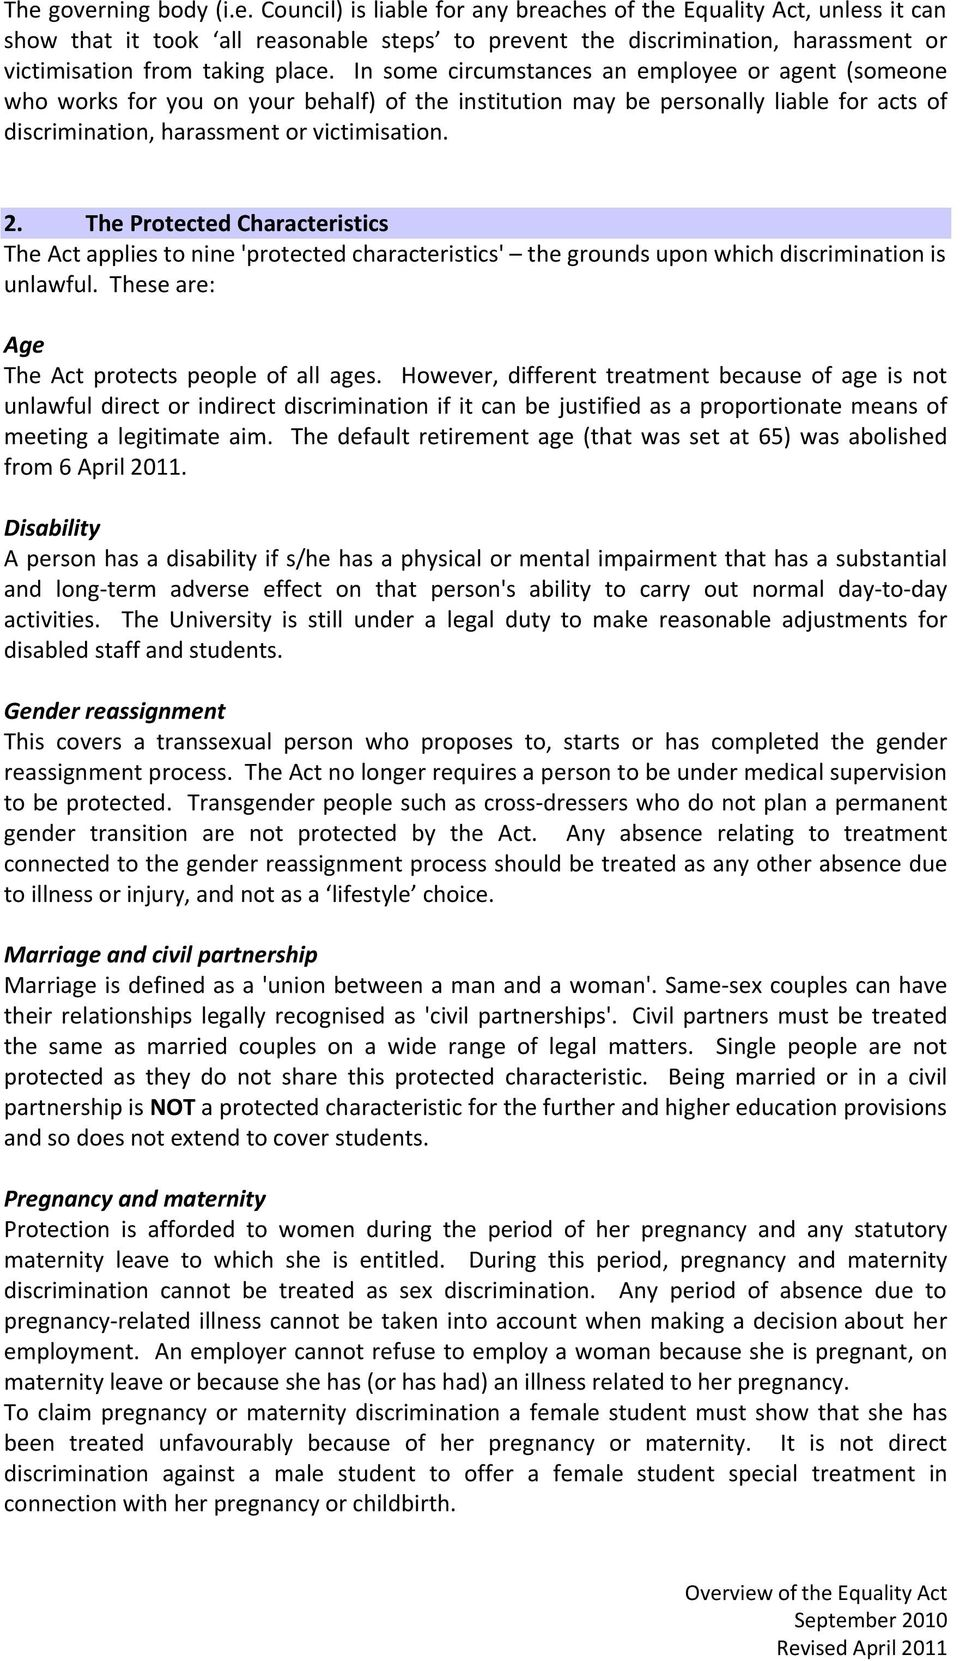 The Protected Characteristics The Act applies to nine 'protected characteristics' the grounds upon which discrimination is unlawful. These are: Age The Act protects people of all ages.